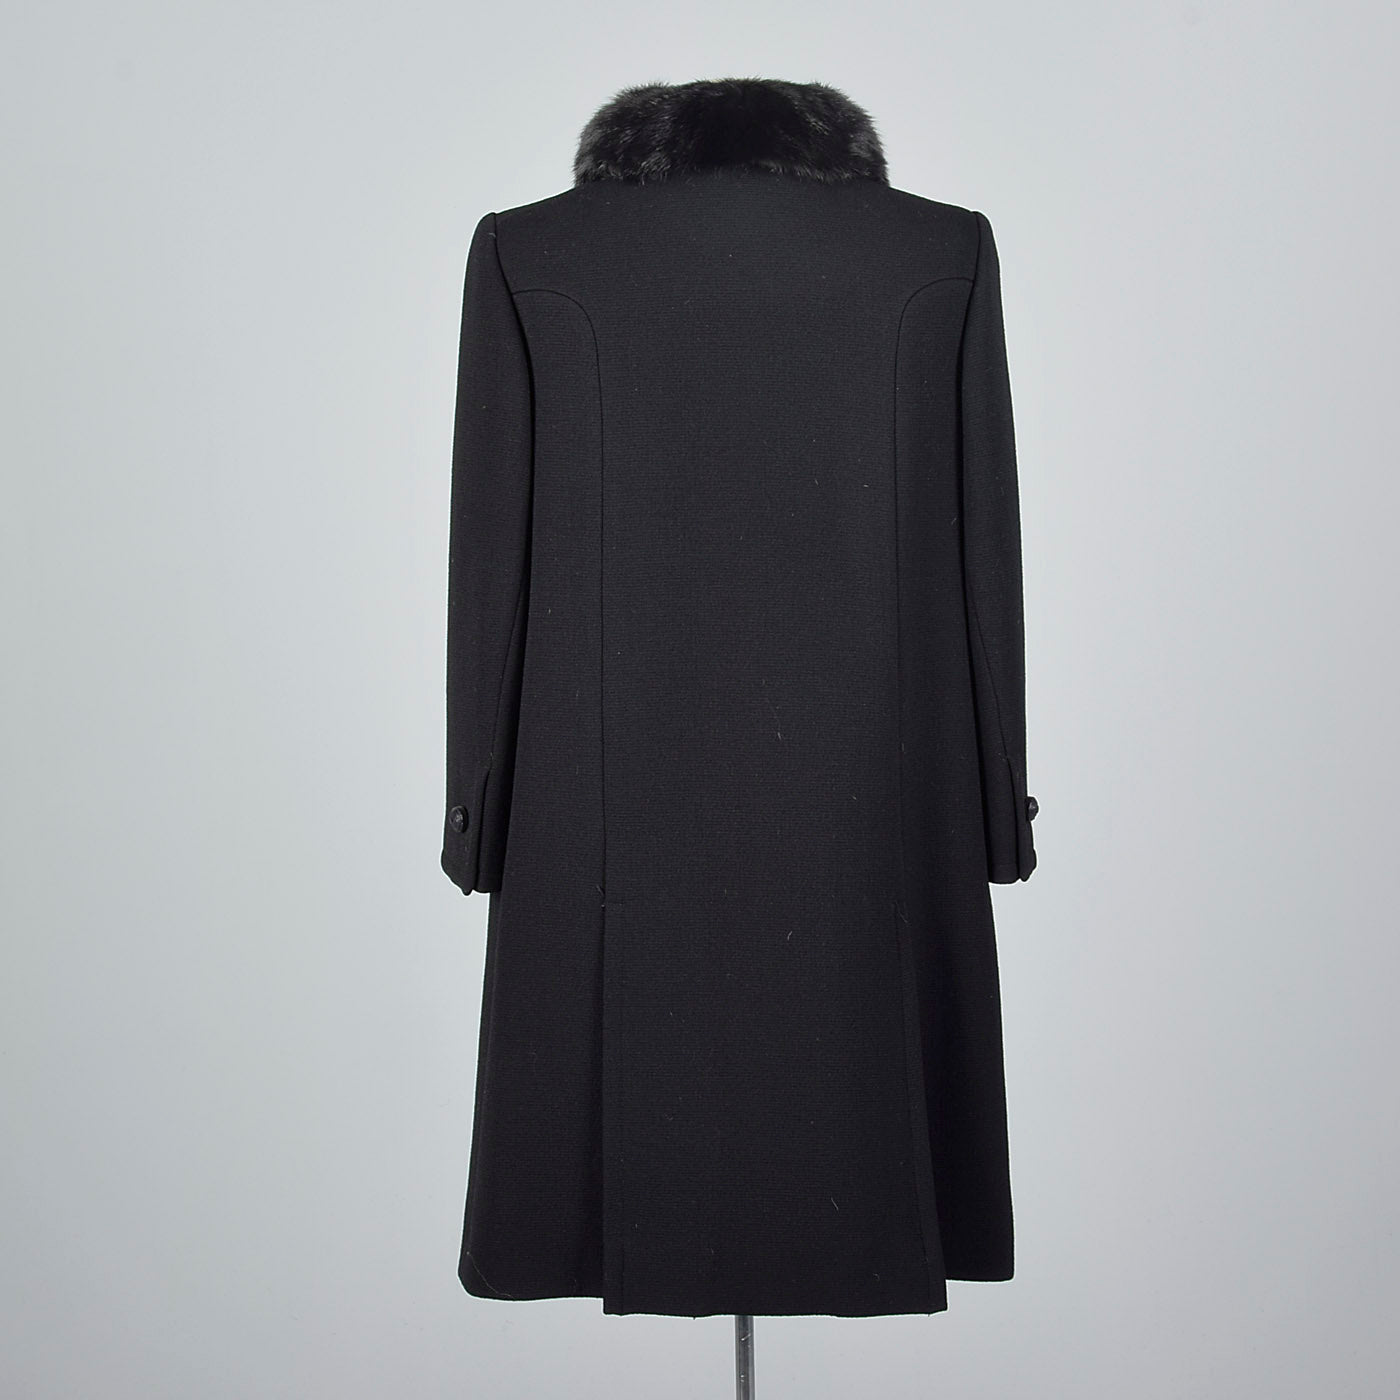 1960s Black Double Breasted Coat with Mink Collar